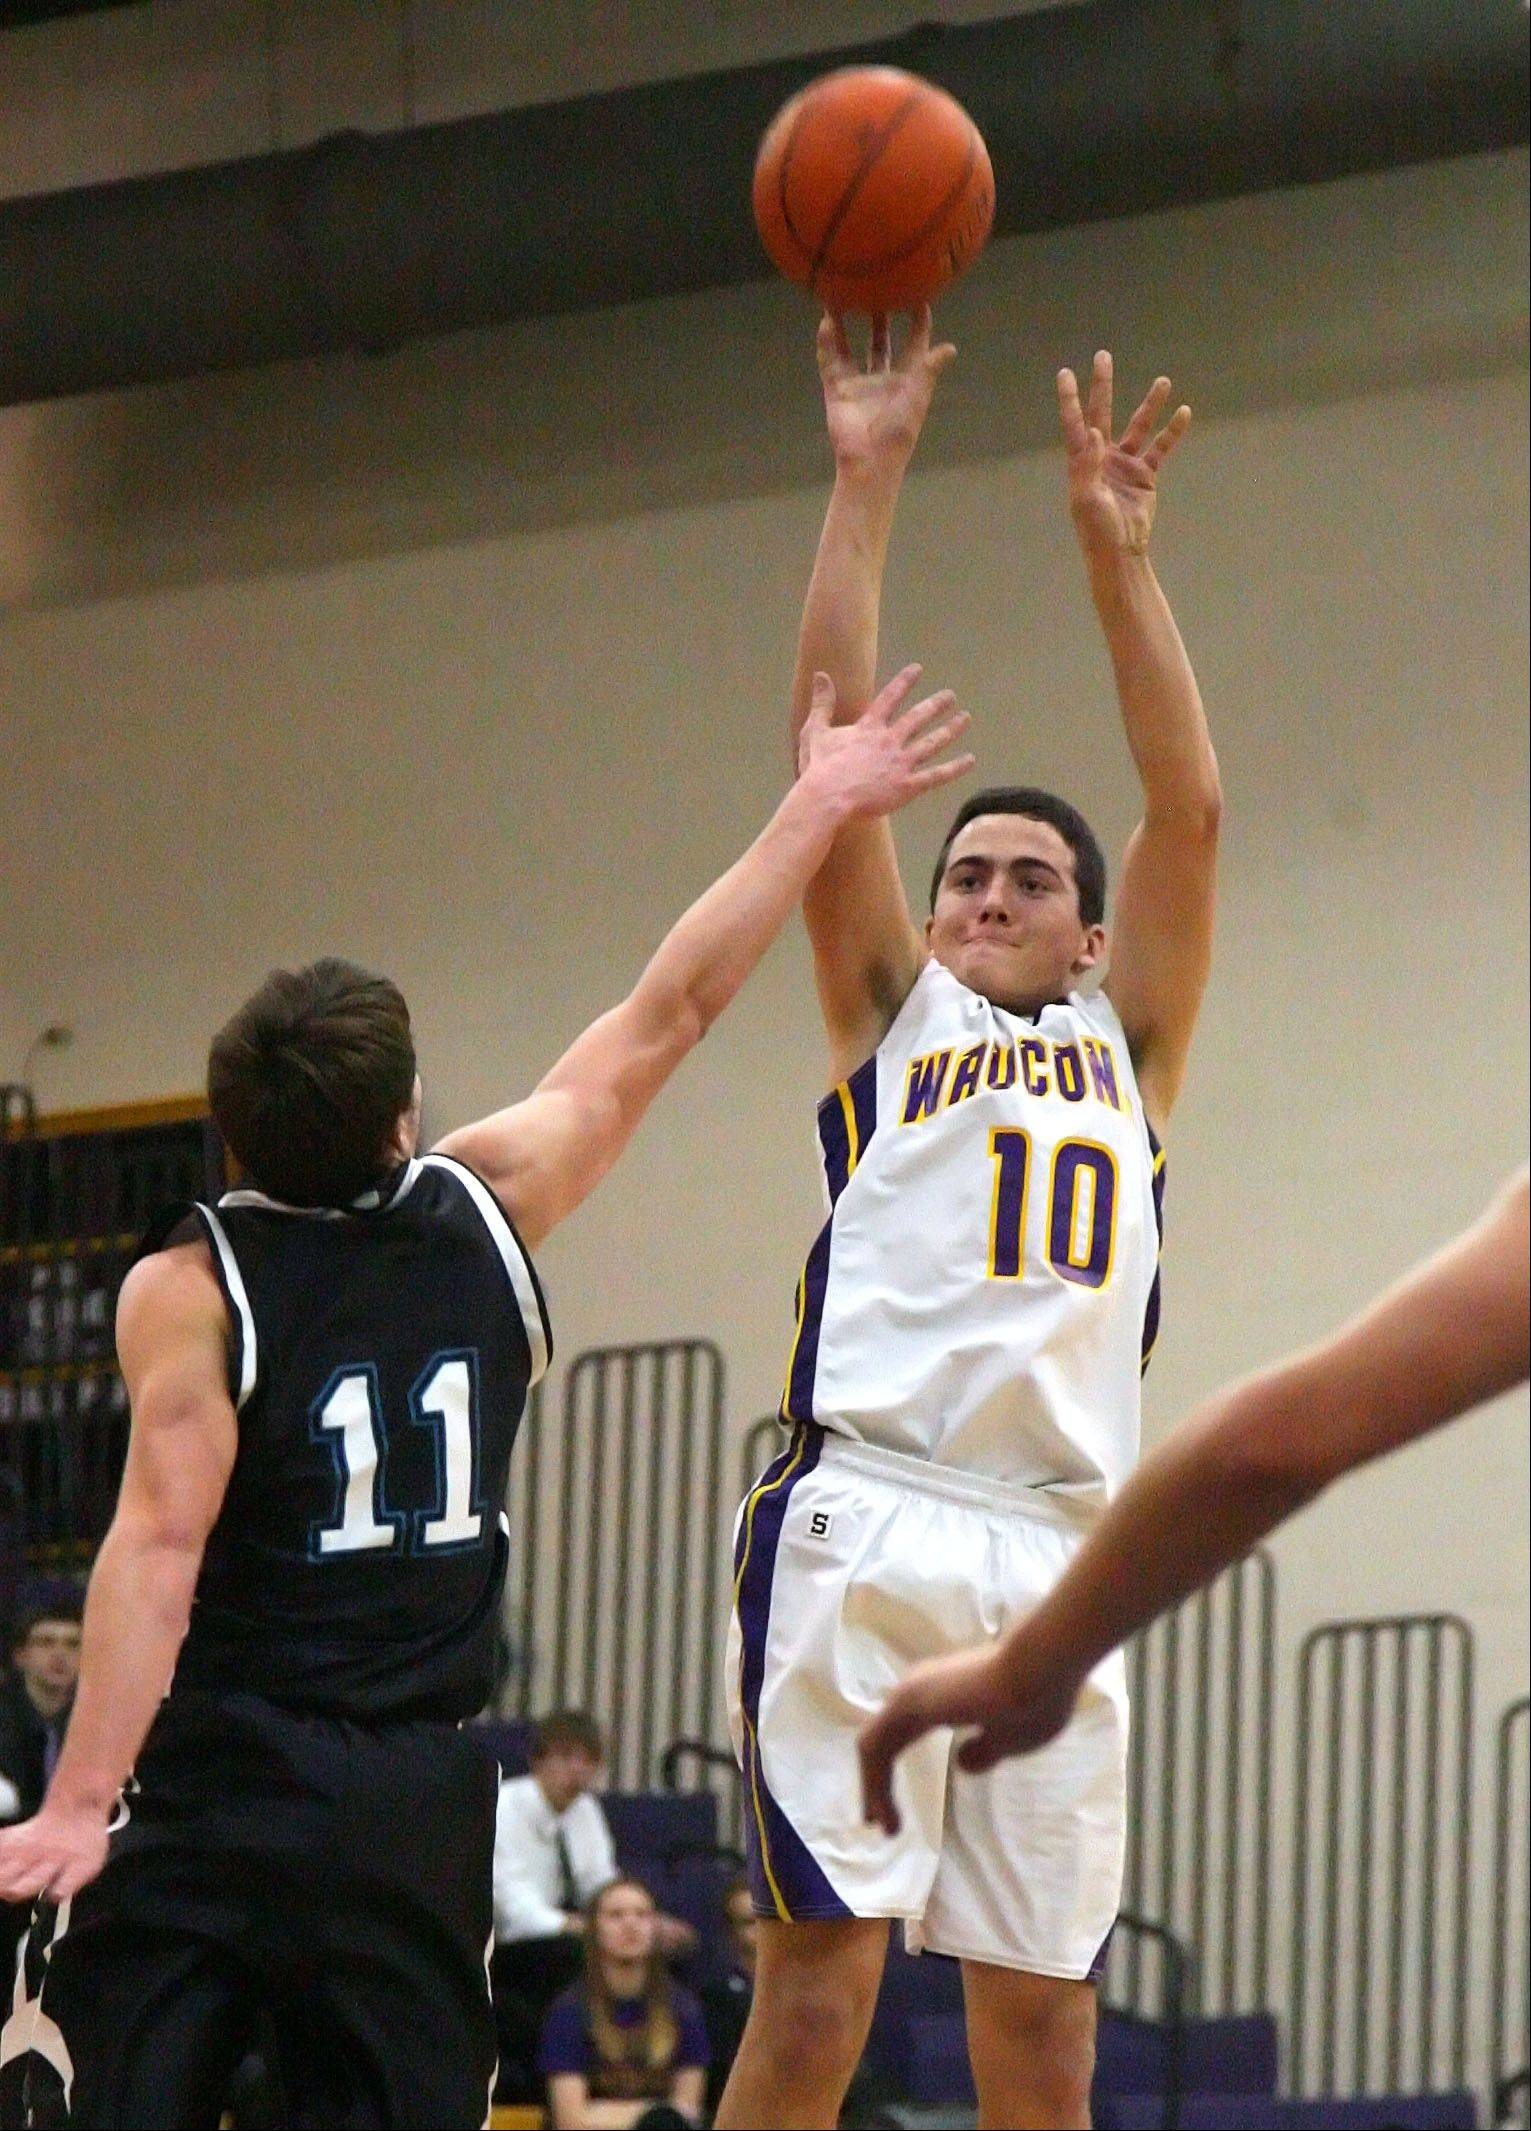 Wauconda's Austin Swenson, right, shoots over Woodstock North's Keith Blomberg.